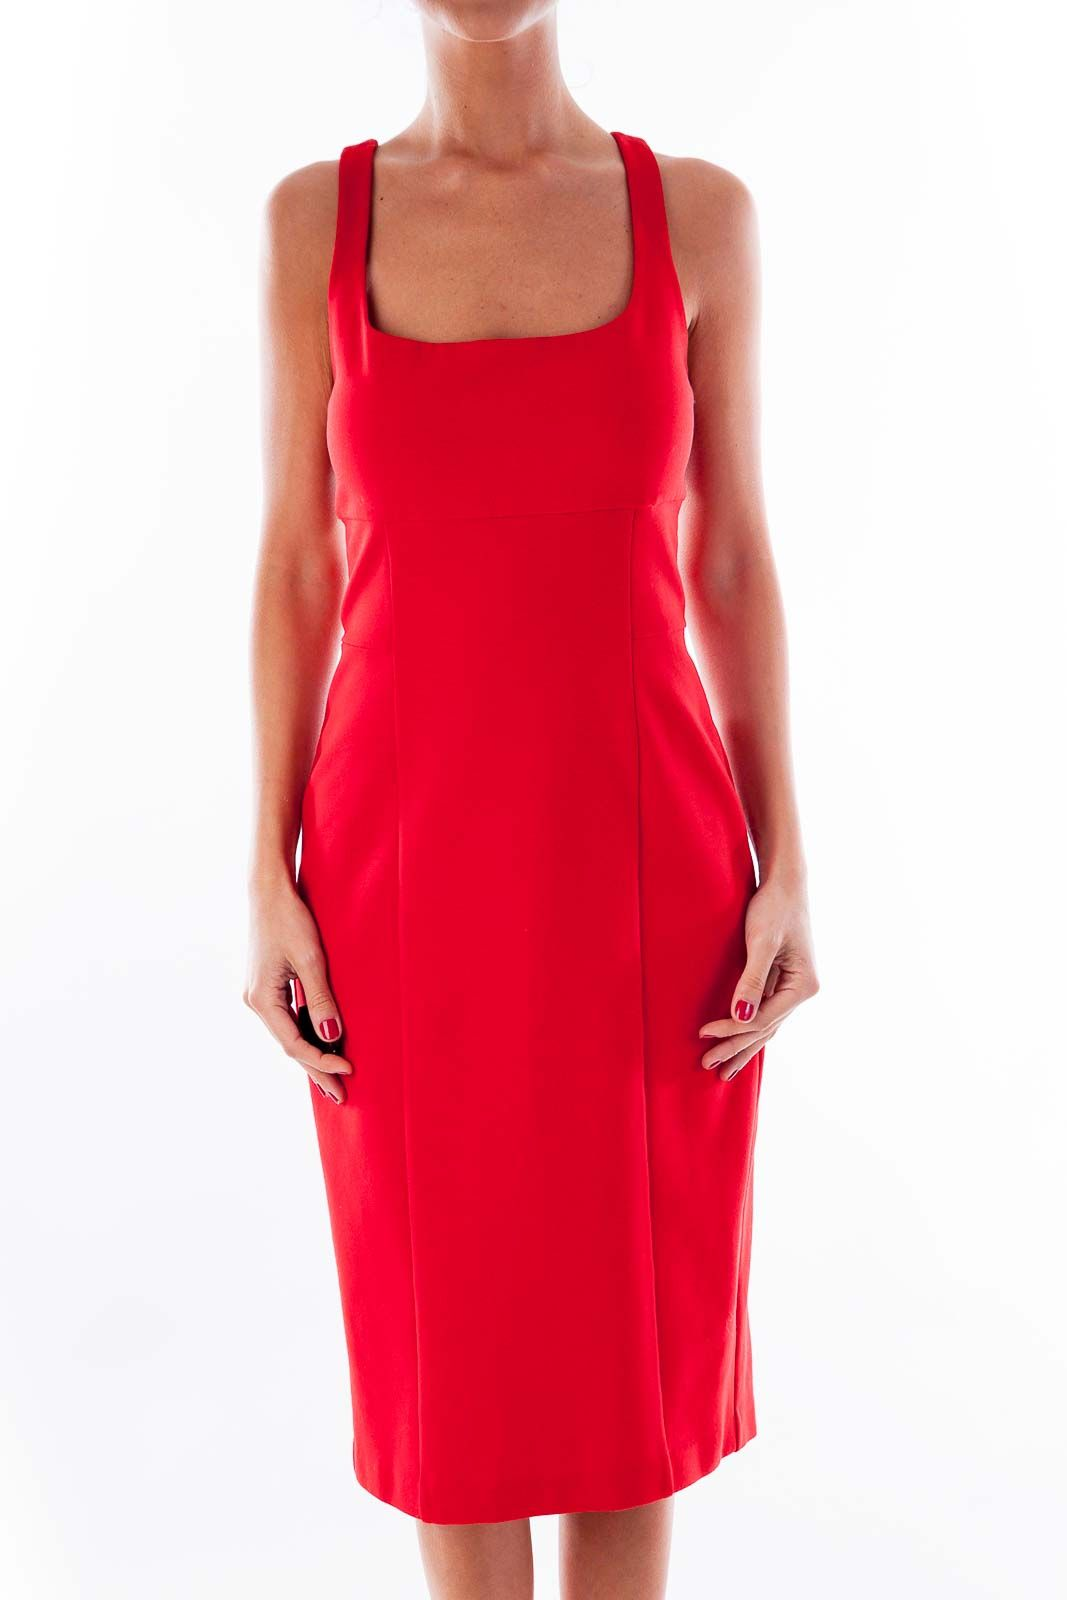 1b1c835e9e7 Classy date night dresses red cocktail dress by Diane Von Furstenberg   silkroll